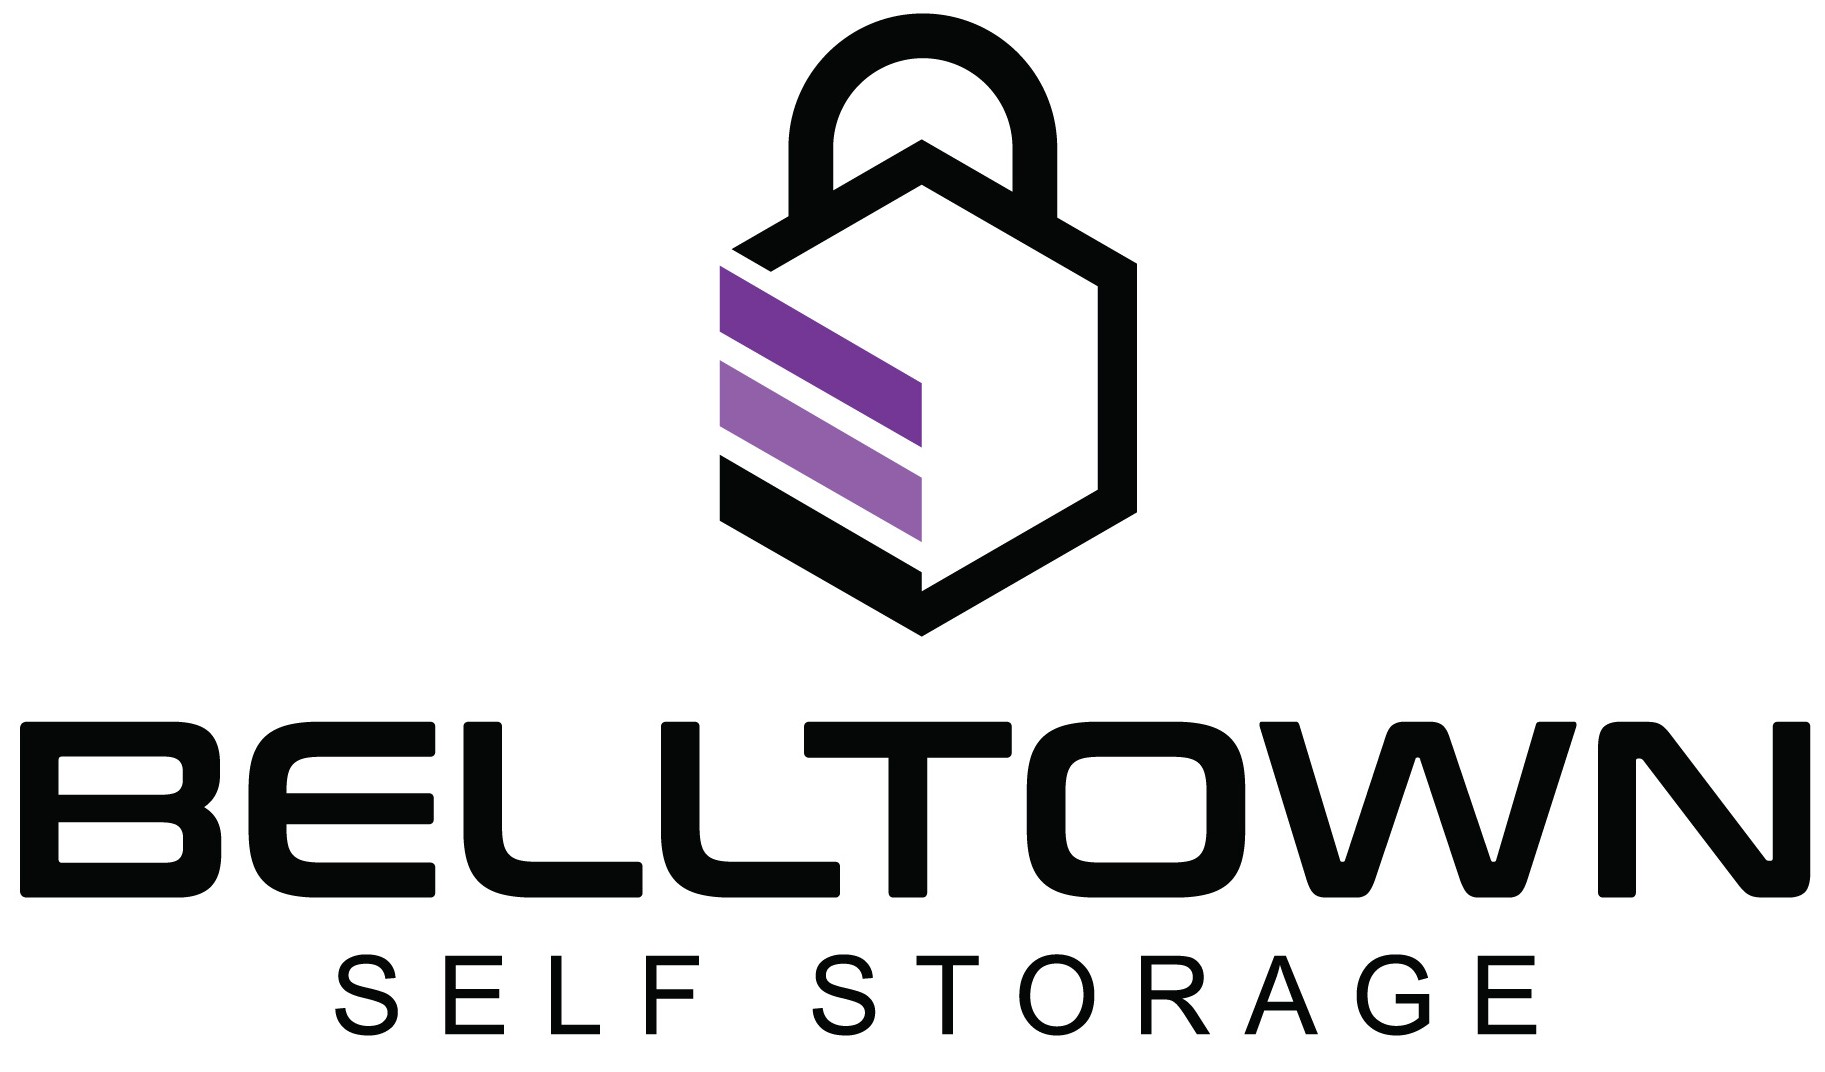 Belltown Self Storage